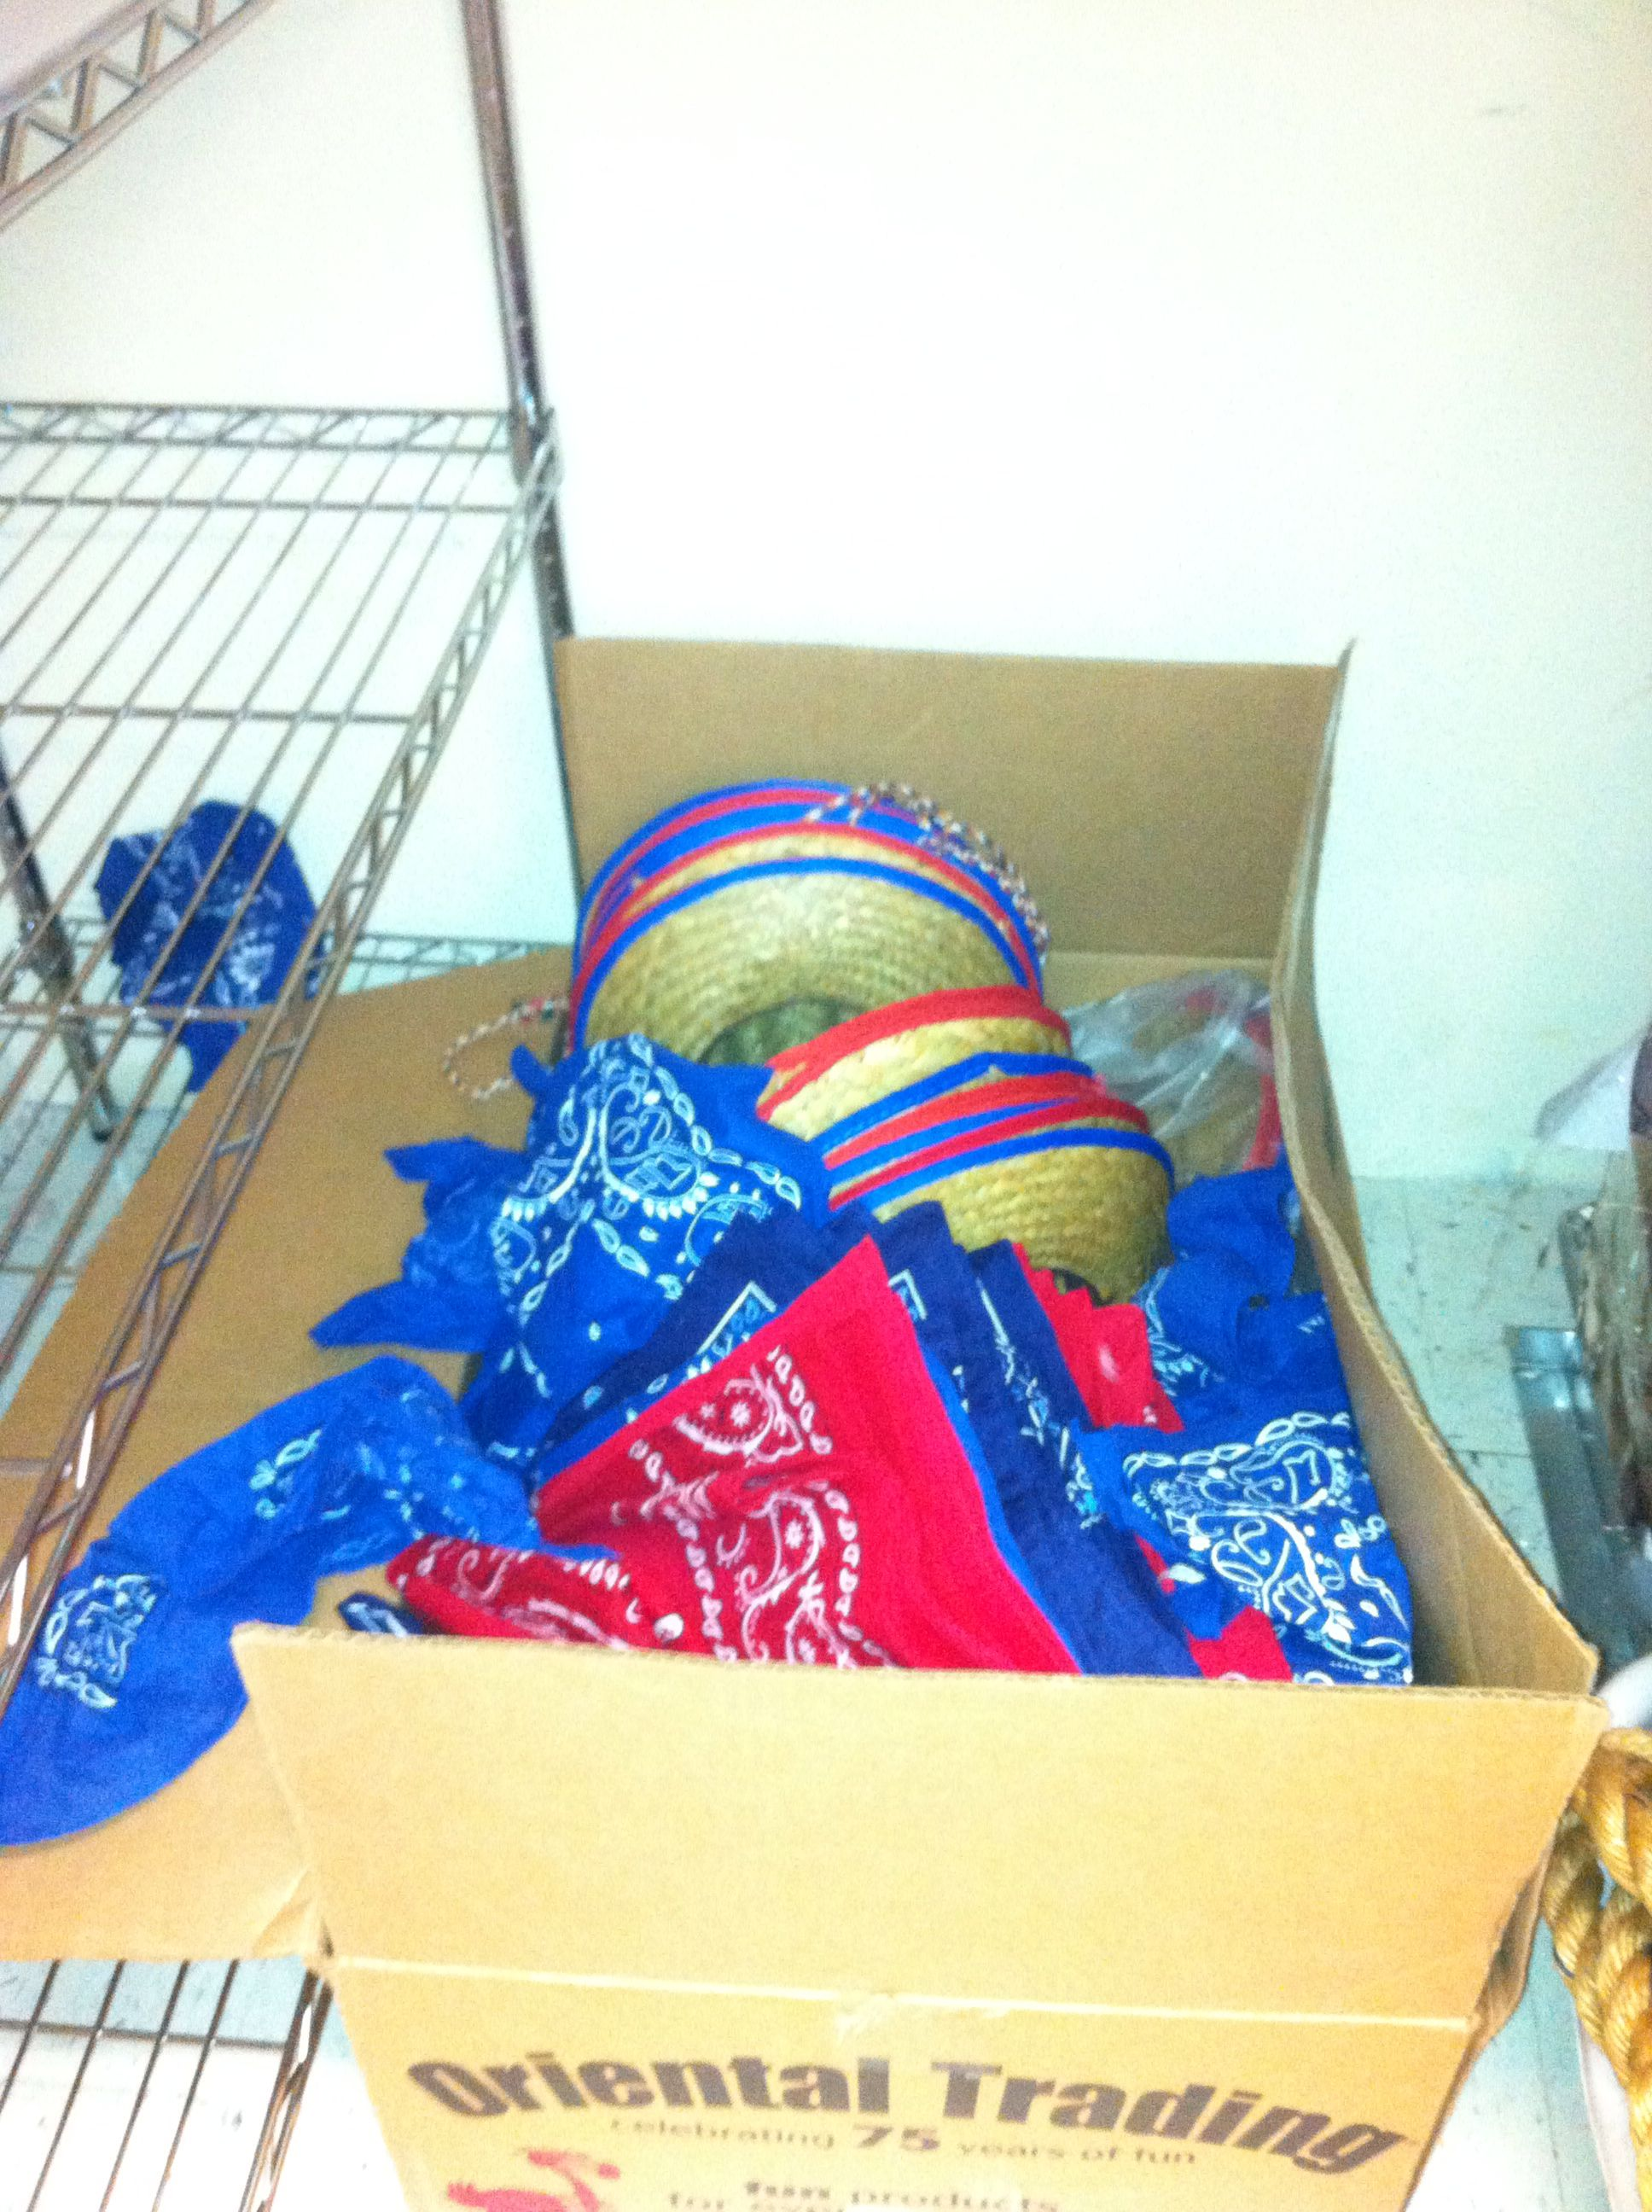 Dozens of hats and bandanas available in storage closet.